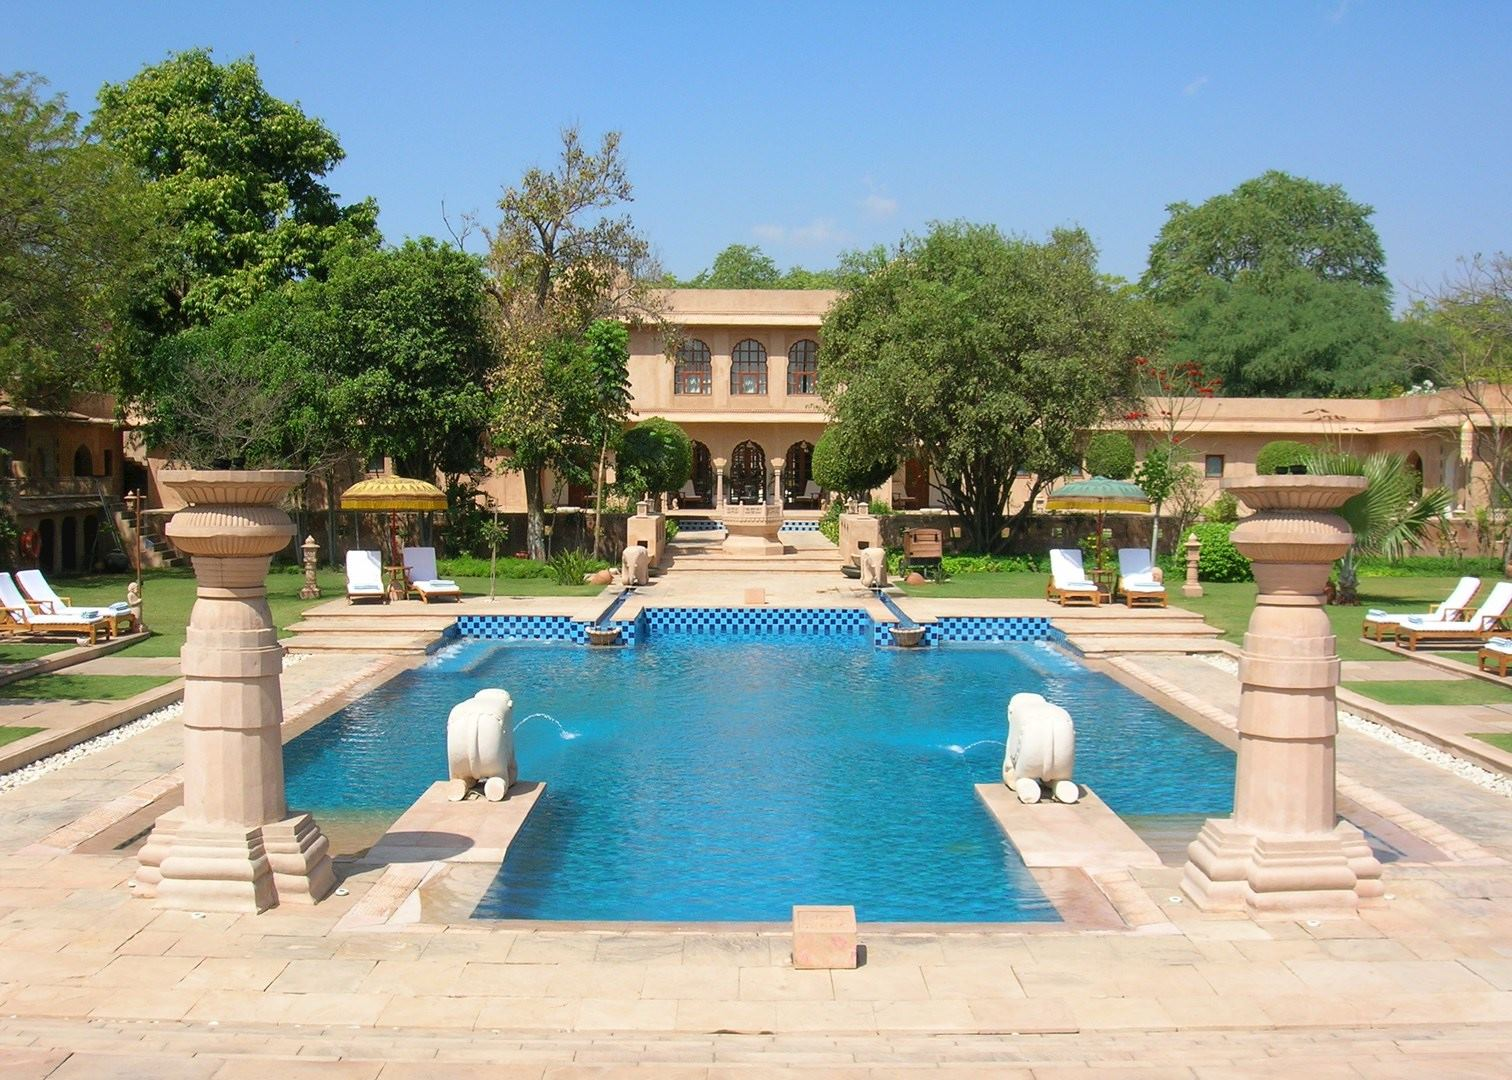 Oberoi Rajvilas Hotels In Jaipur Audley Travel